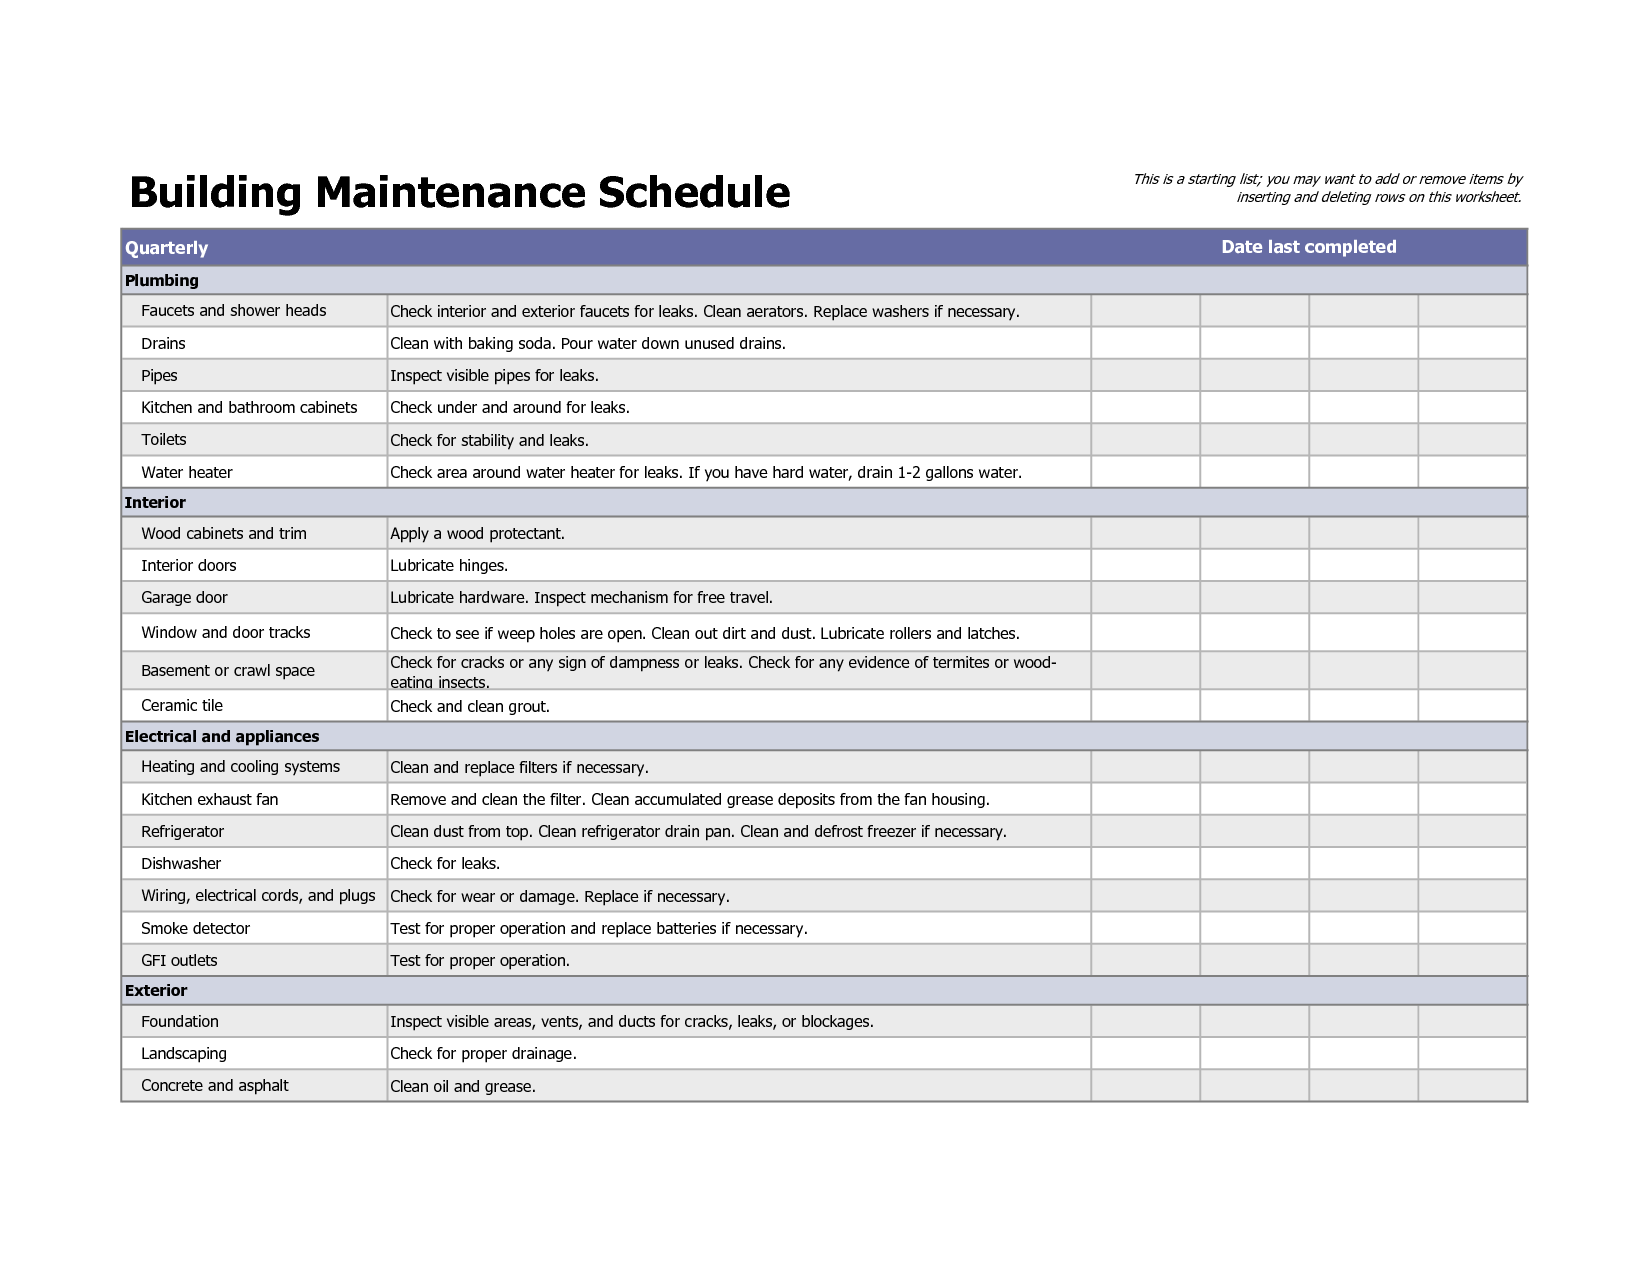 Building Maintenance Schedule Excel Template Building